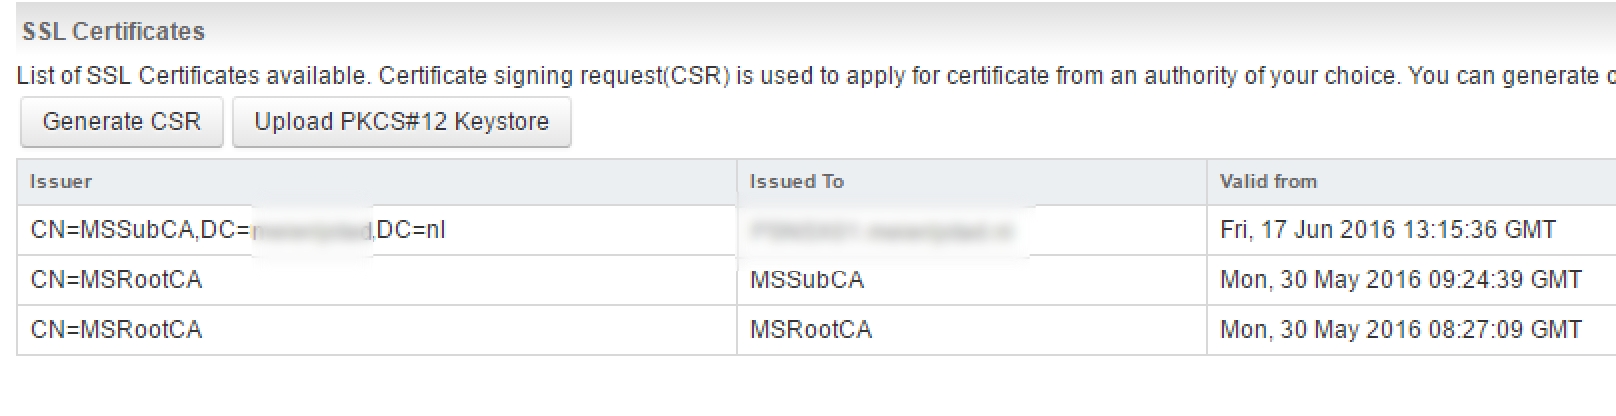 Vmware Nsx Manager Ssl Certificate A How To Guide